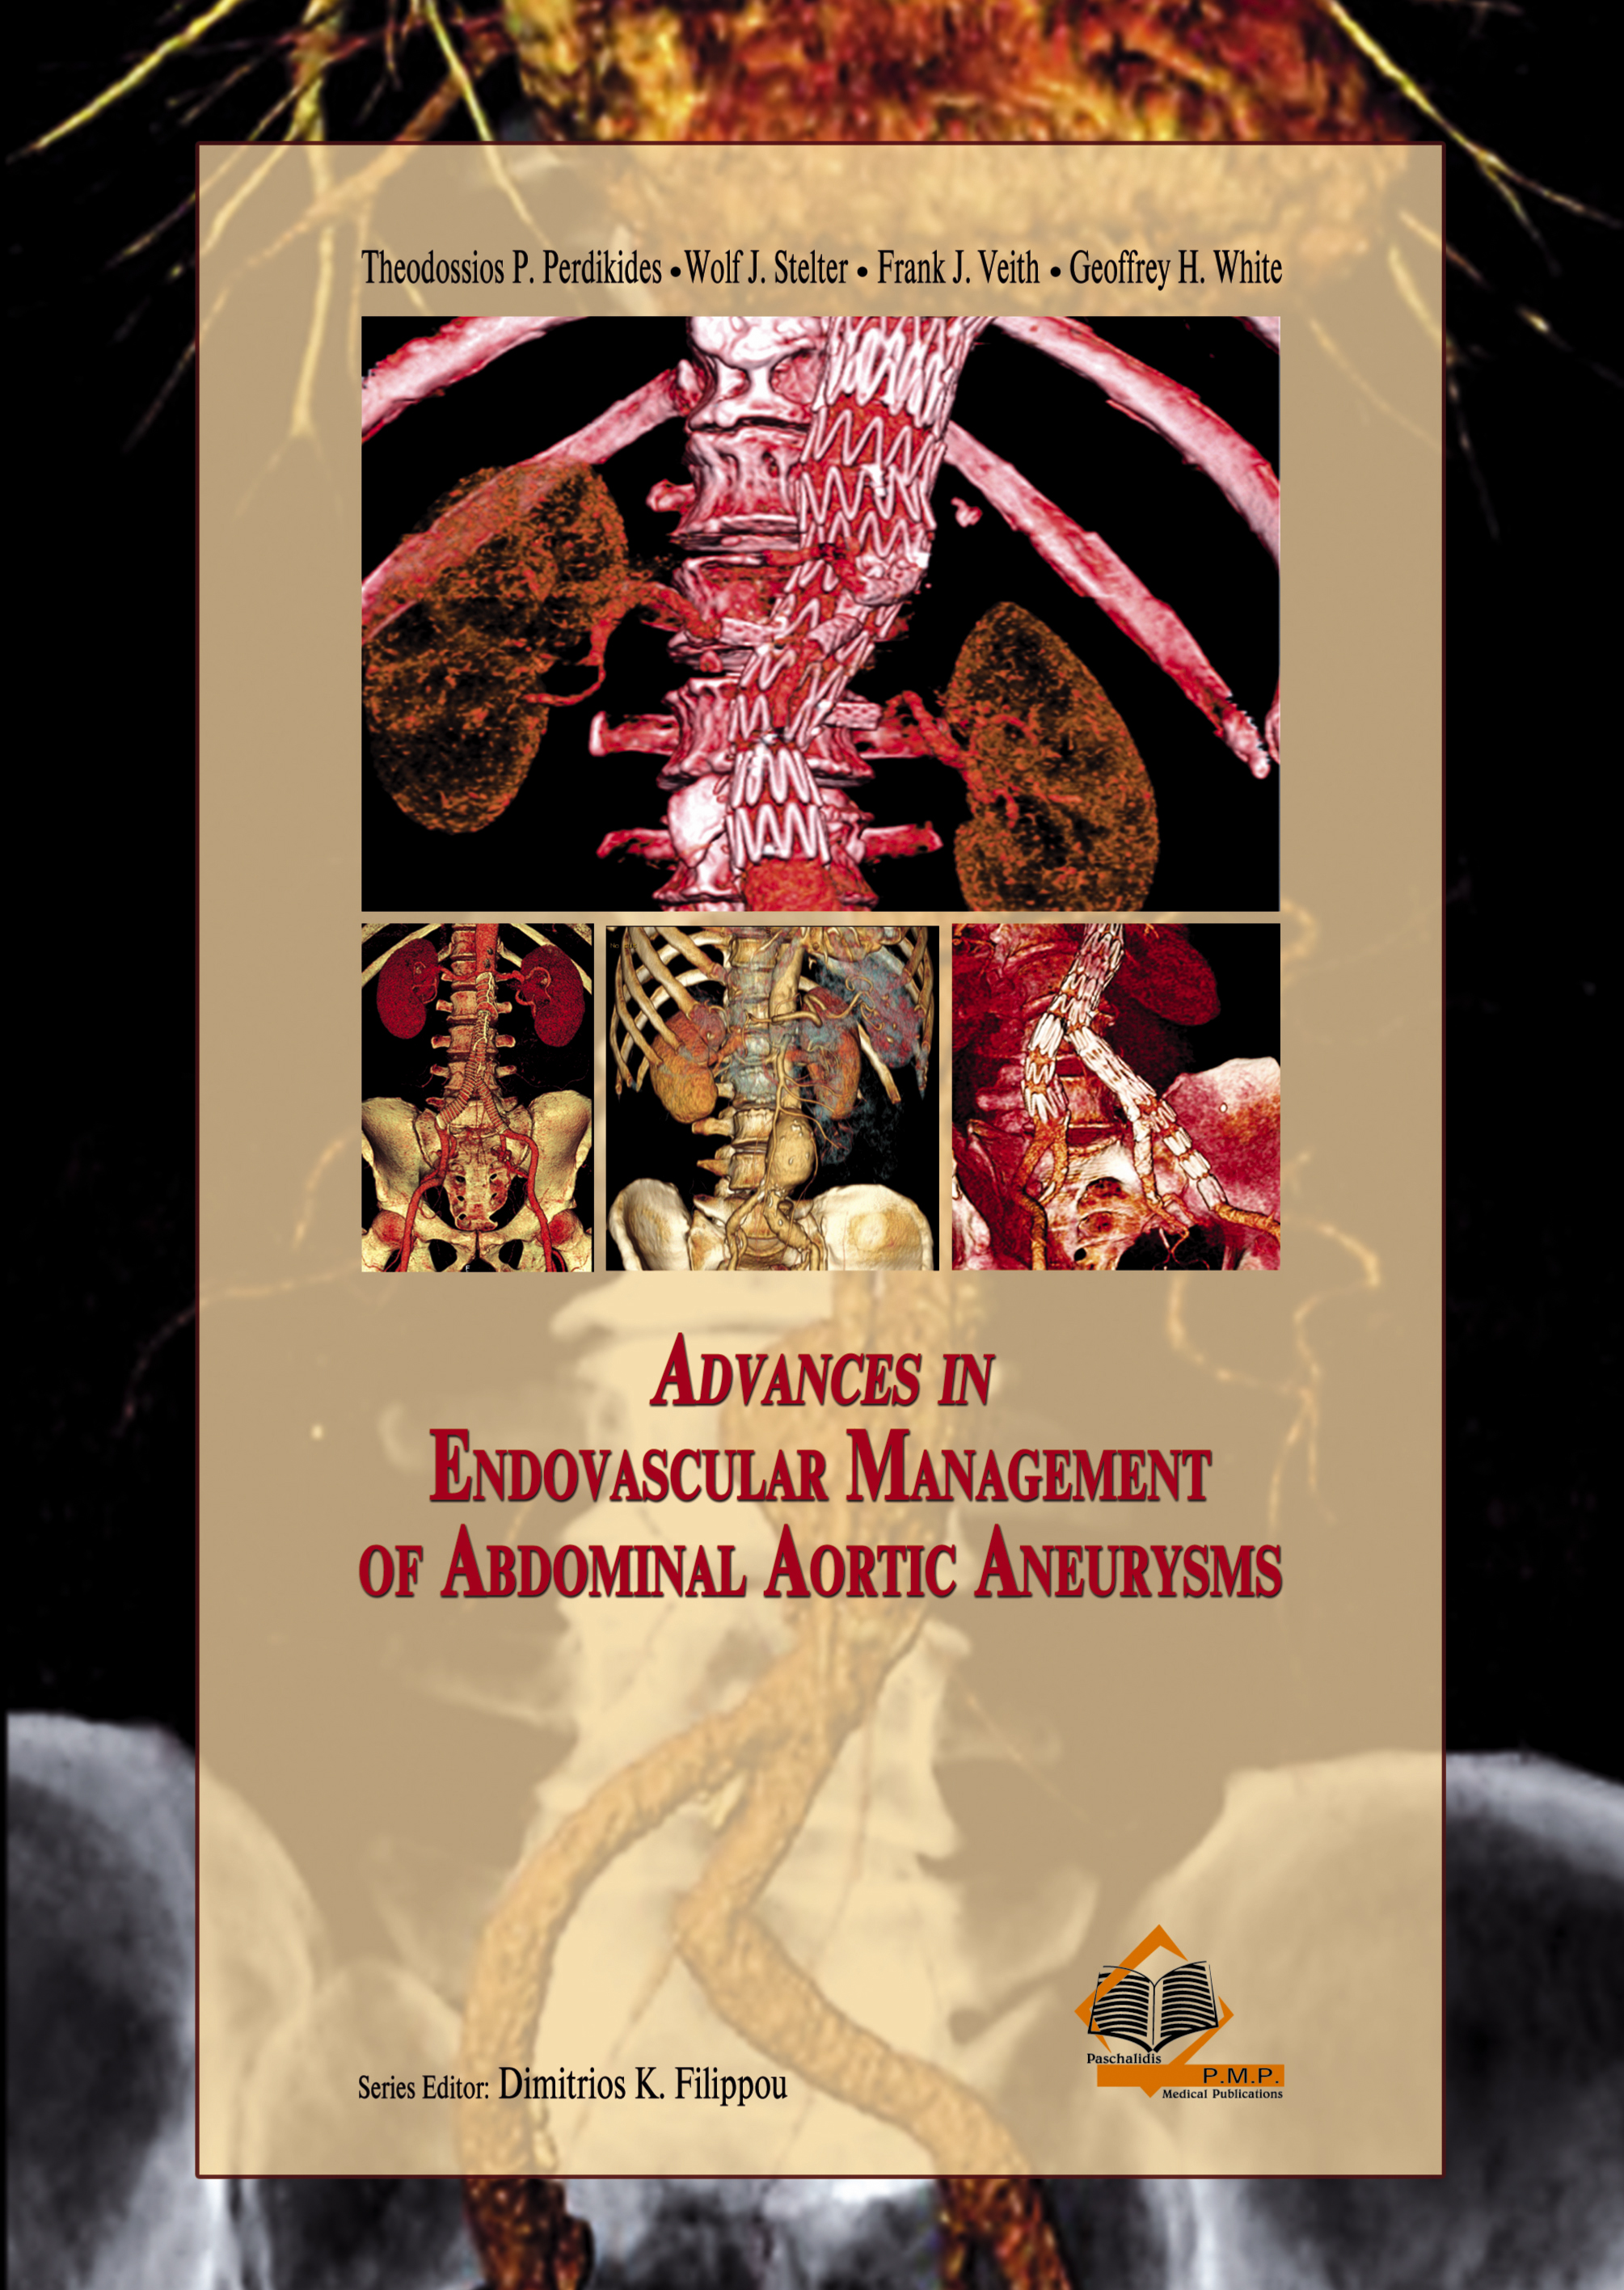 Advances in Endovascular Management of Abdominal Aortic Aneurysms